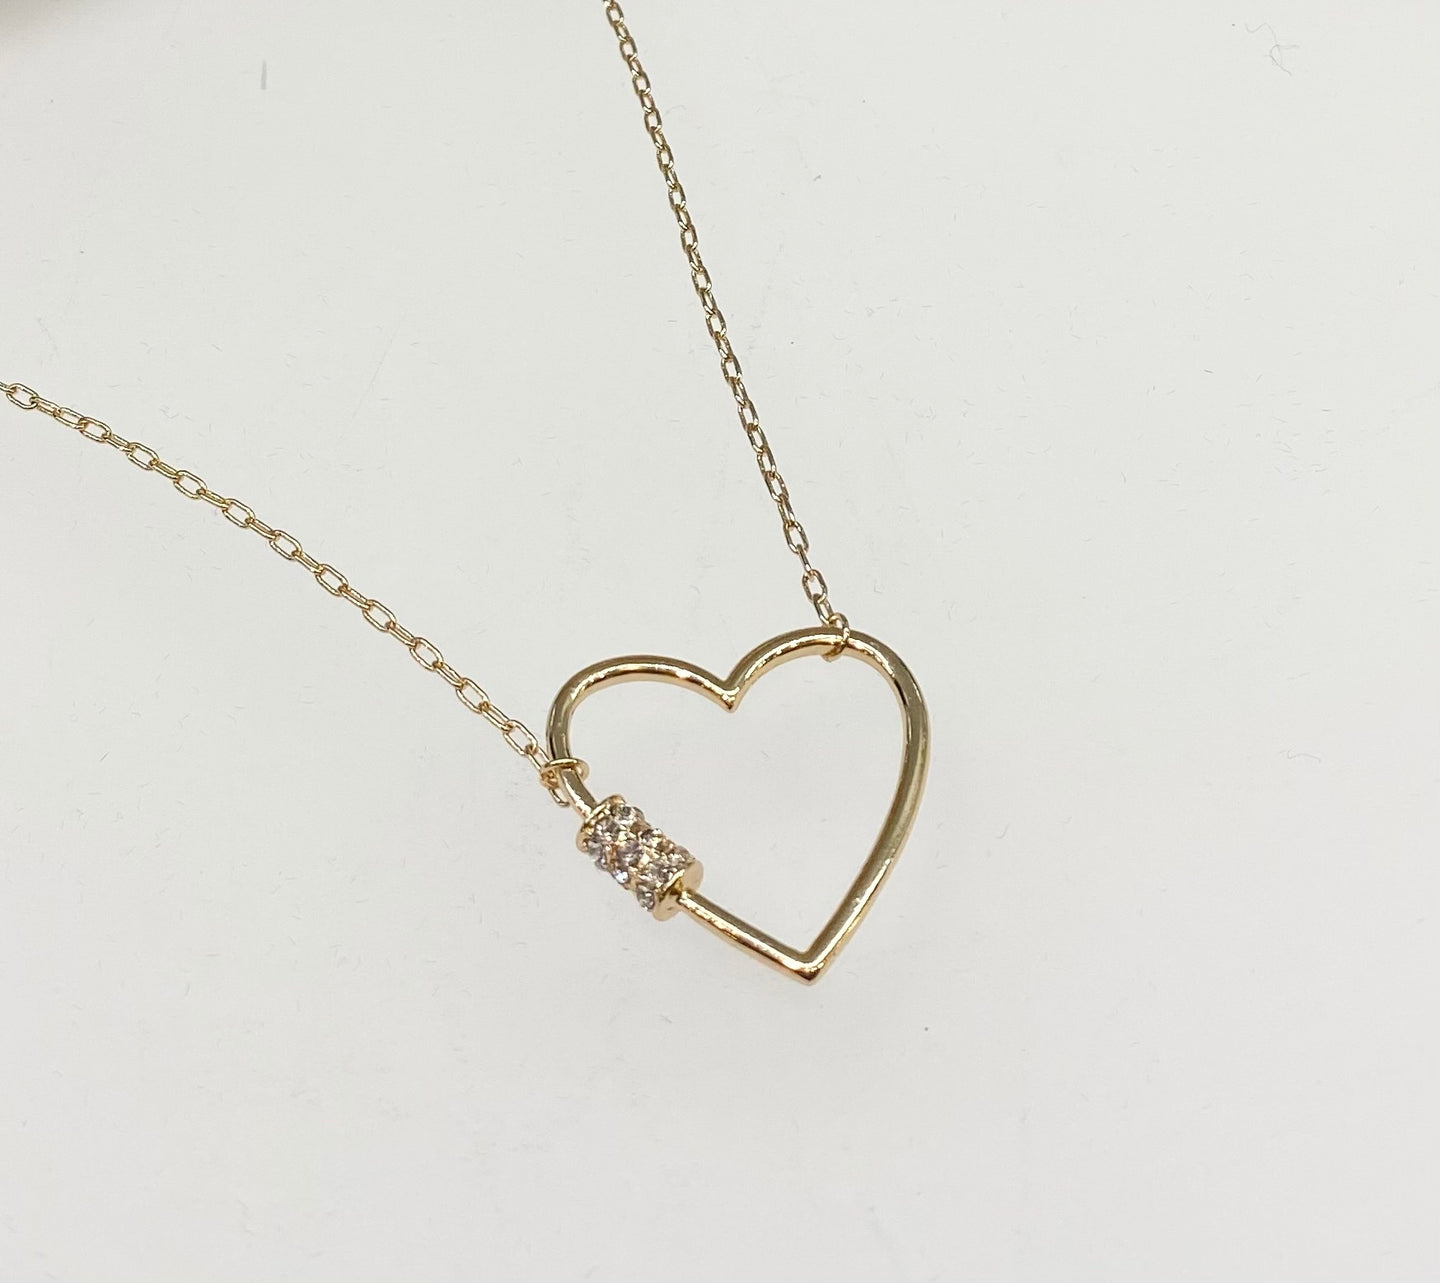 Open Heart Necklace with Crystal Barrel Accent - Large